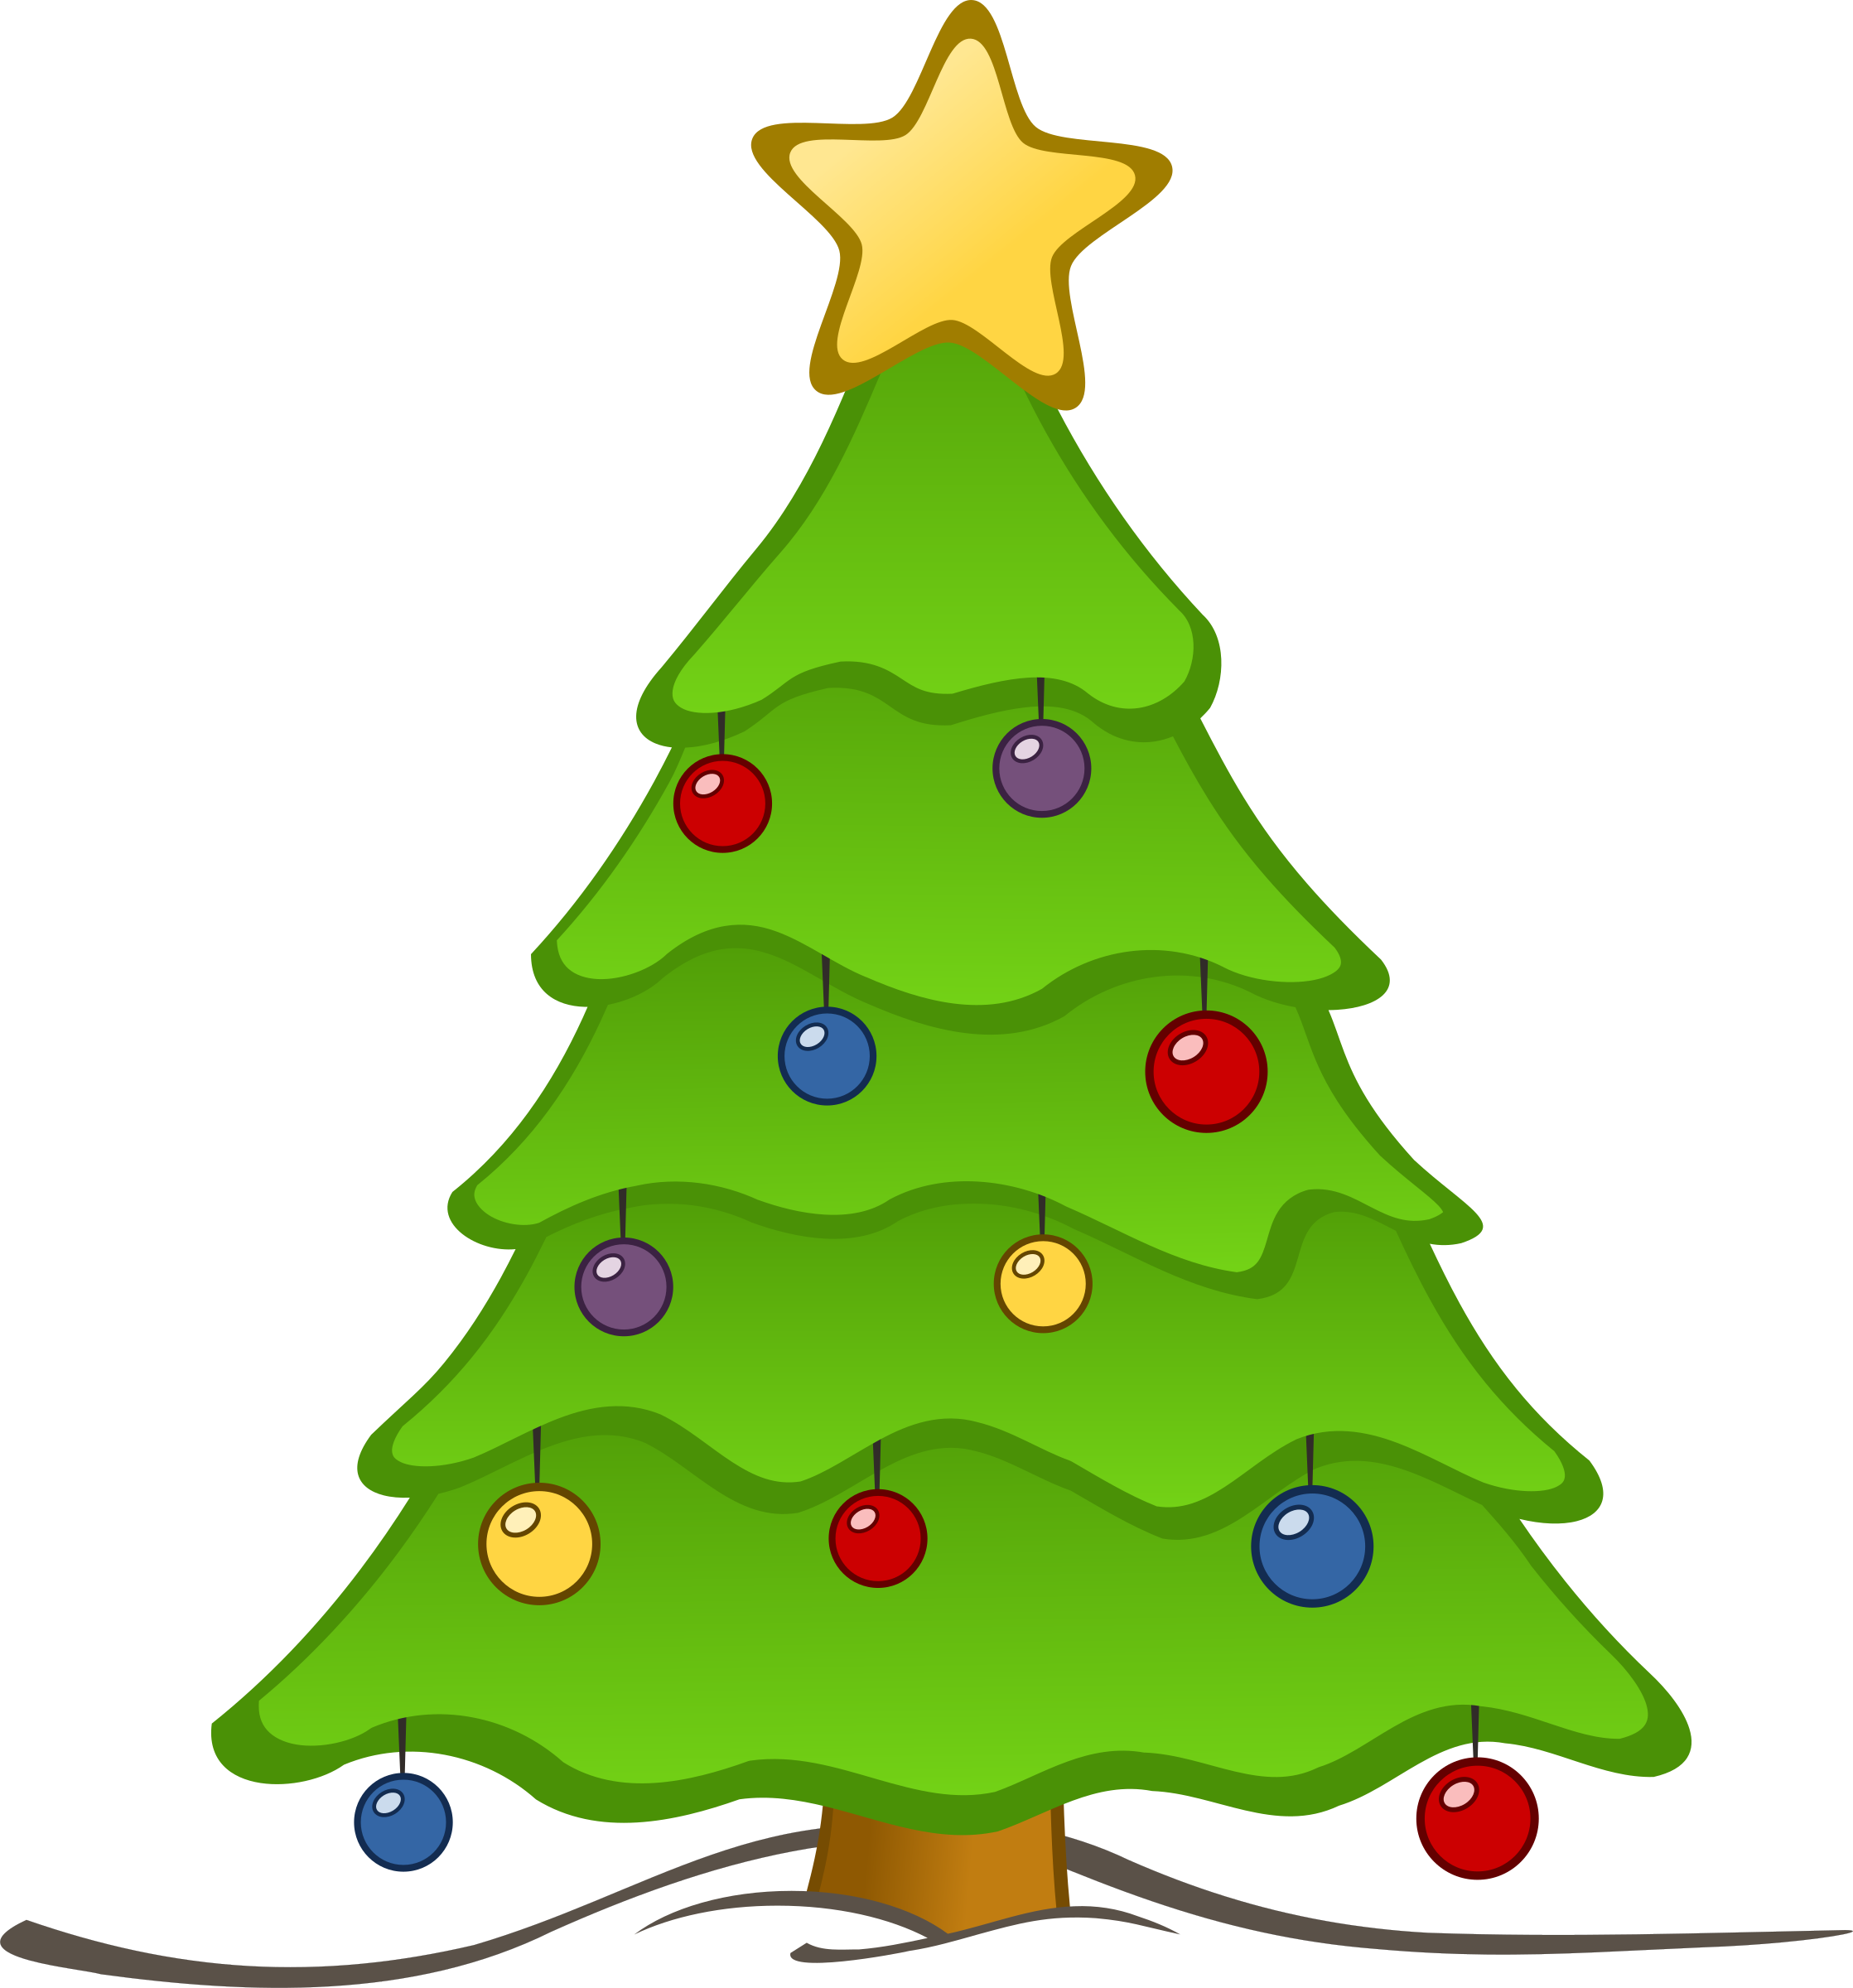 Tree for drawing at. Hedgehog clipart christmas